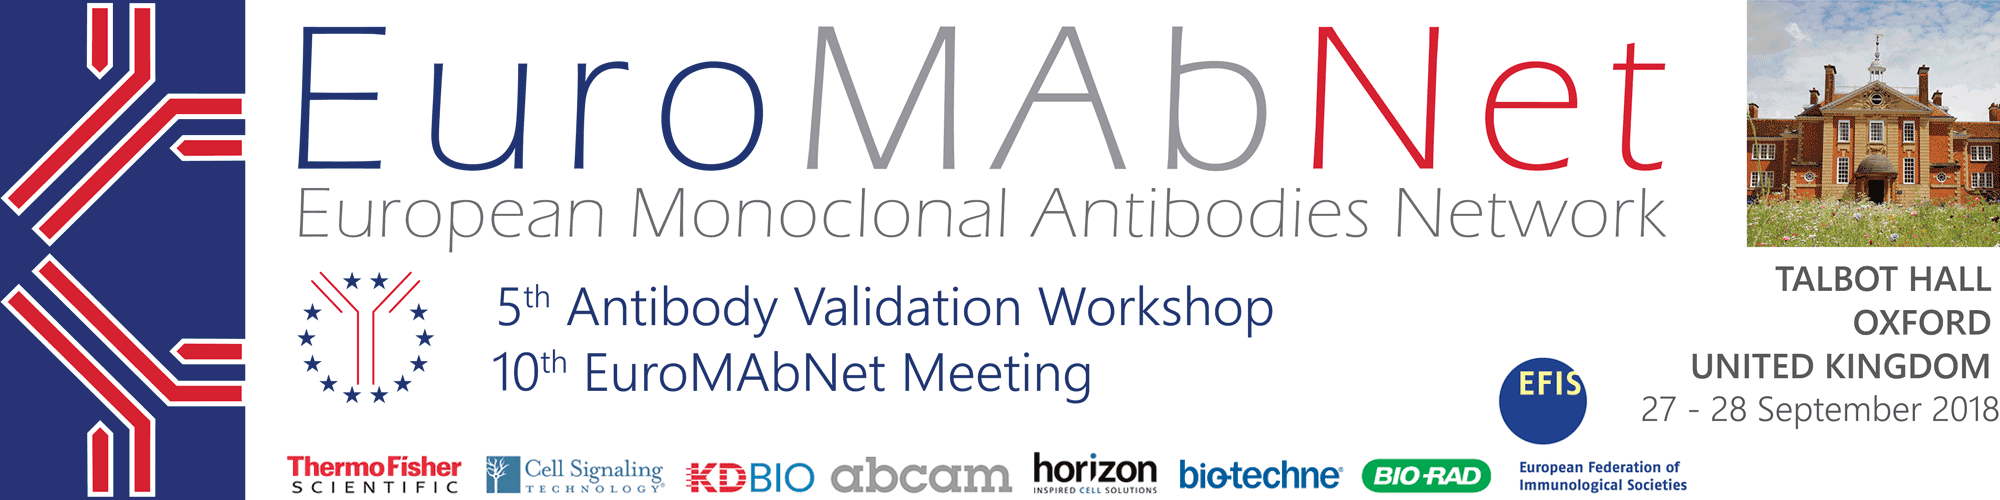 10th EuroMAbNet Meeting and 5th Antibody Validation Workshop. 27th and 28th of September 2018. Oxford, UK